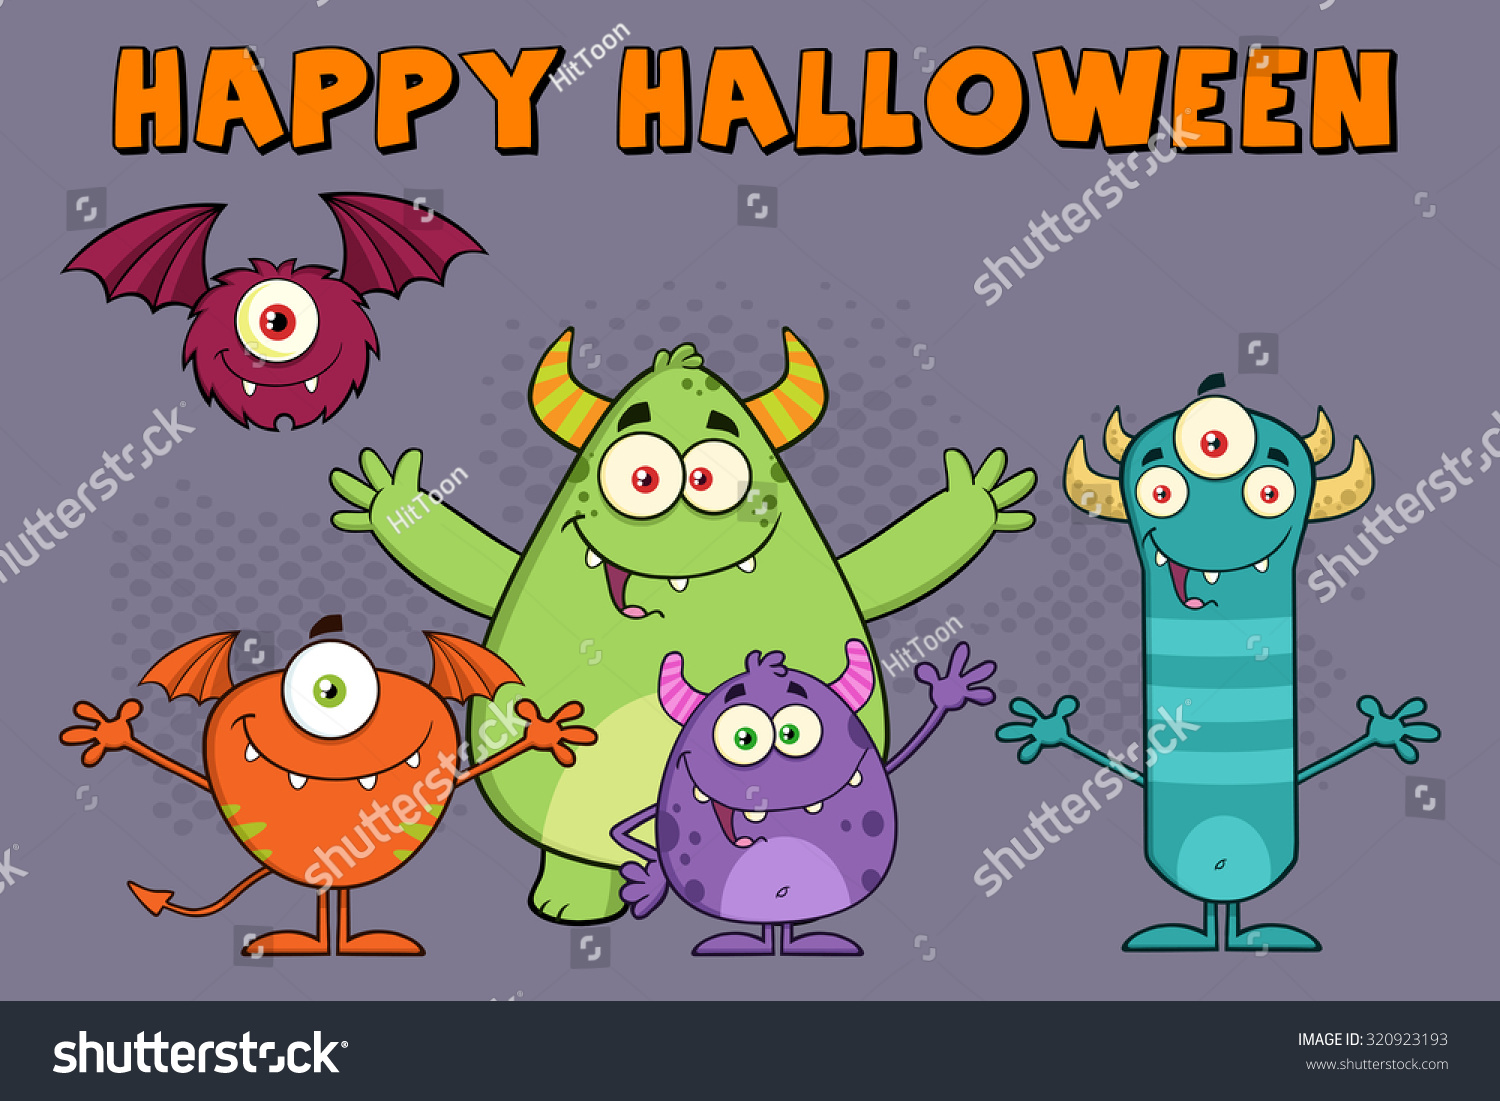 Funny monsters cartoon characters raster illustration stock funny monsters cartoon characters raster illustration greeting card kristyandbryce Gallery